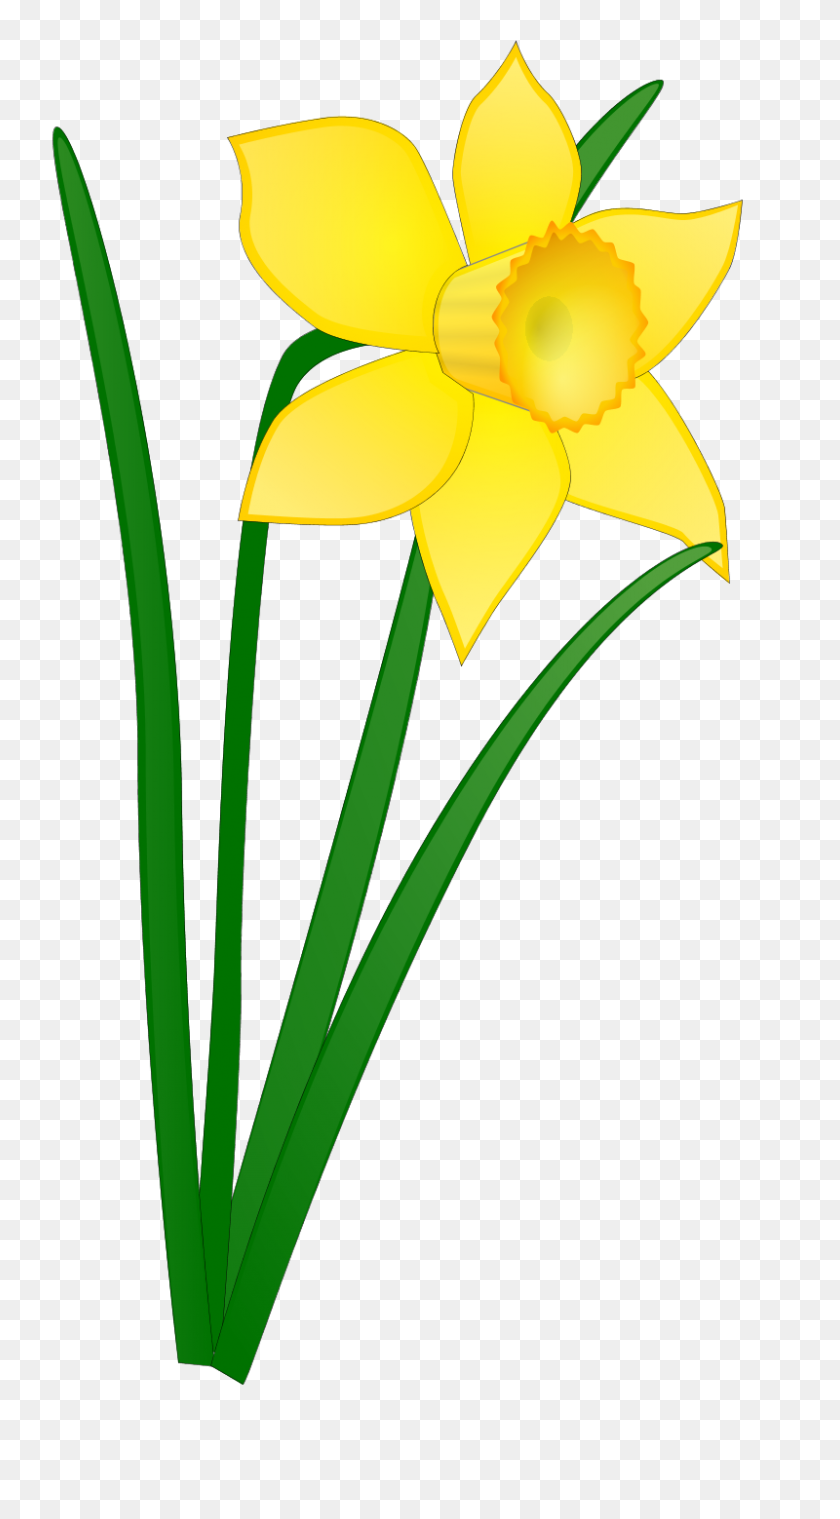 May Flowers Clipart Summer Flowers Clip Art - May Flowers Clip Art